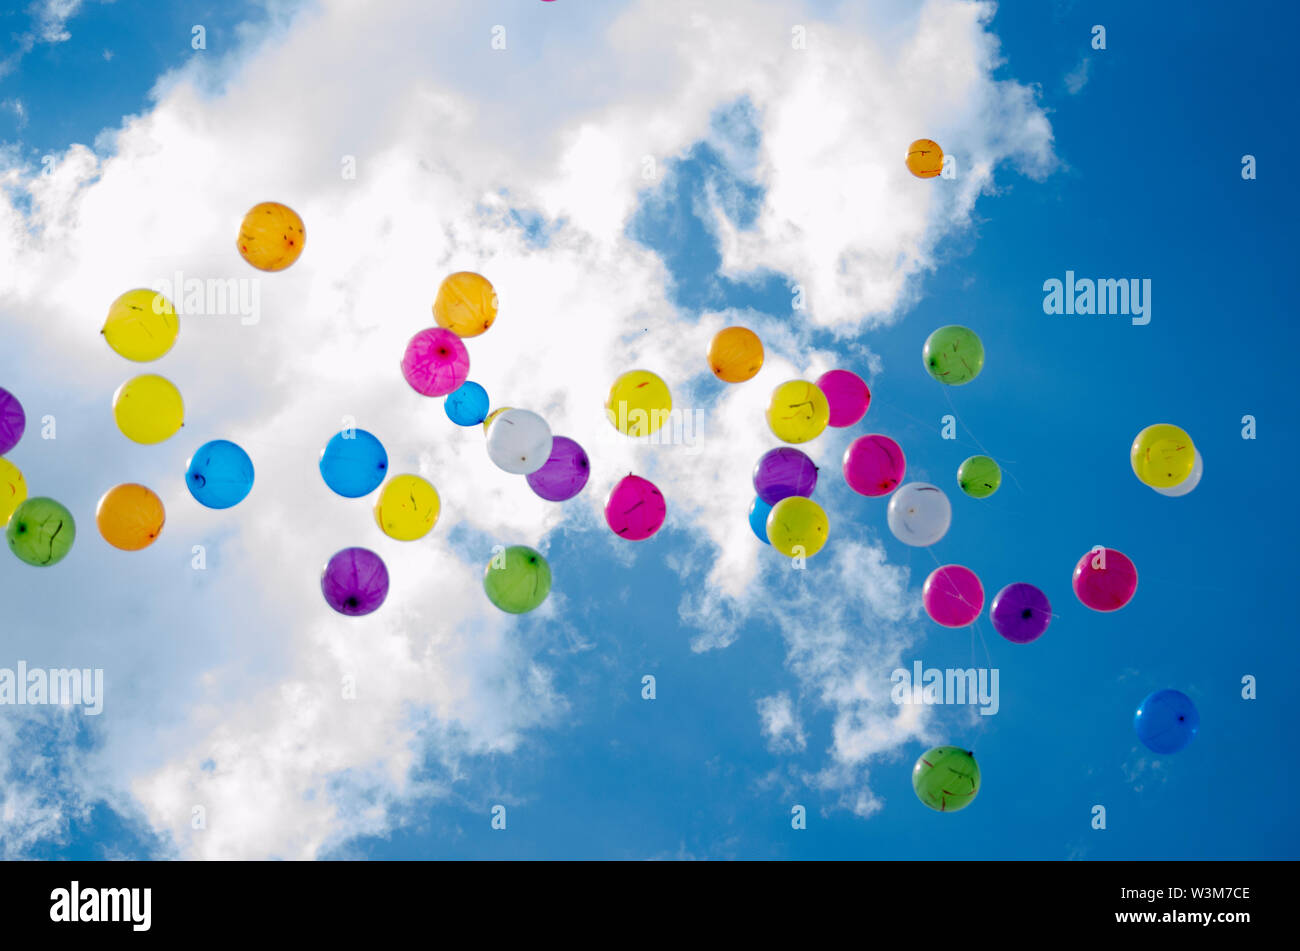 Colourful balloons in the blue cloudy sky - Stock Image